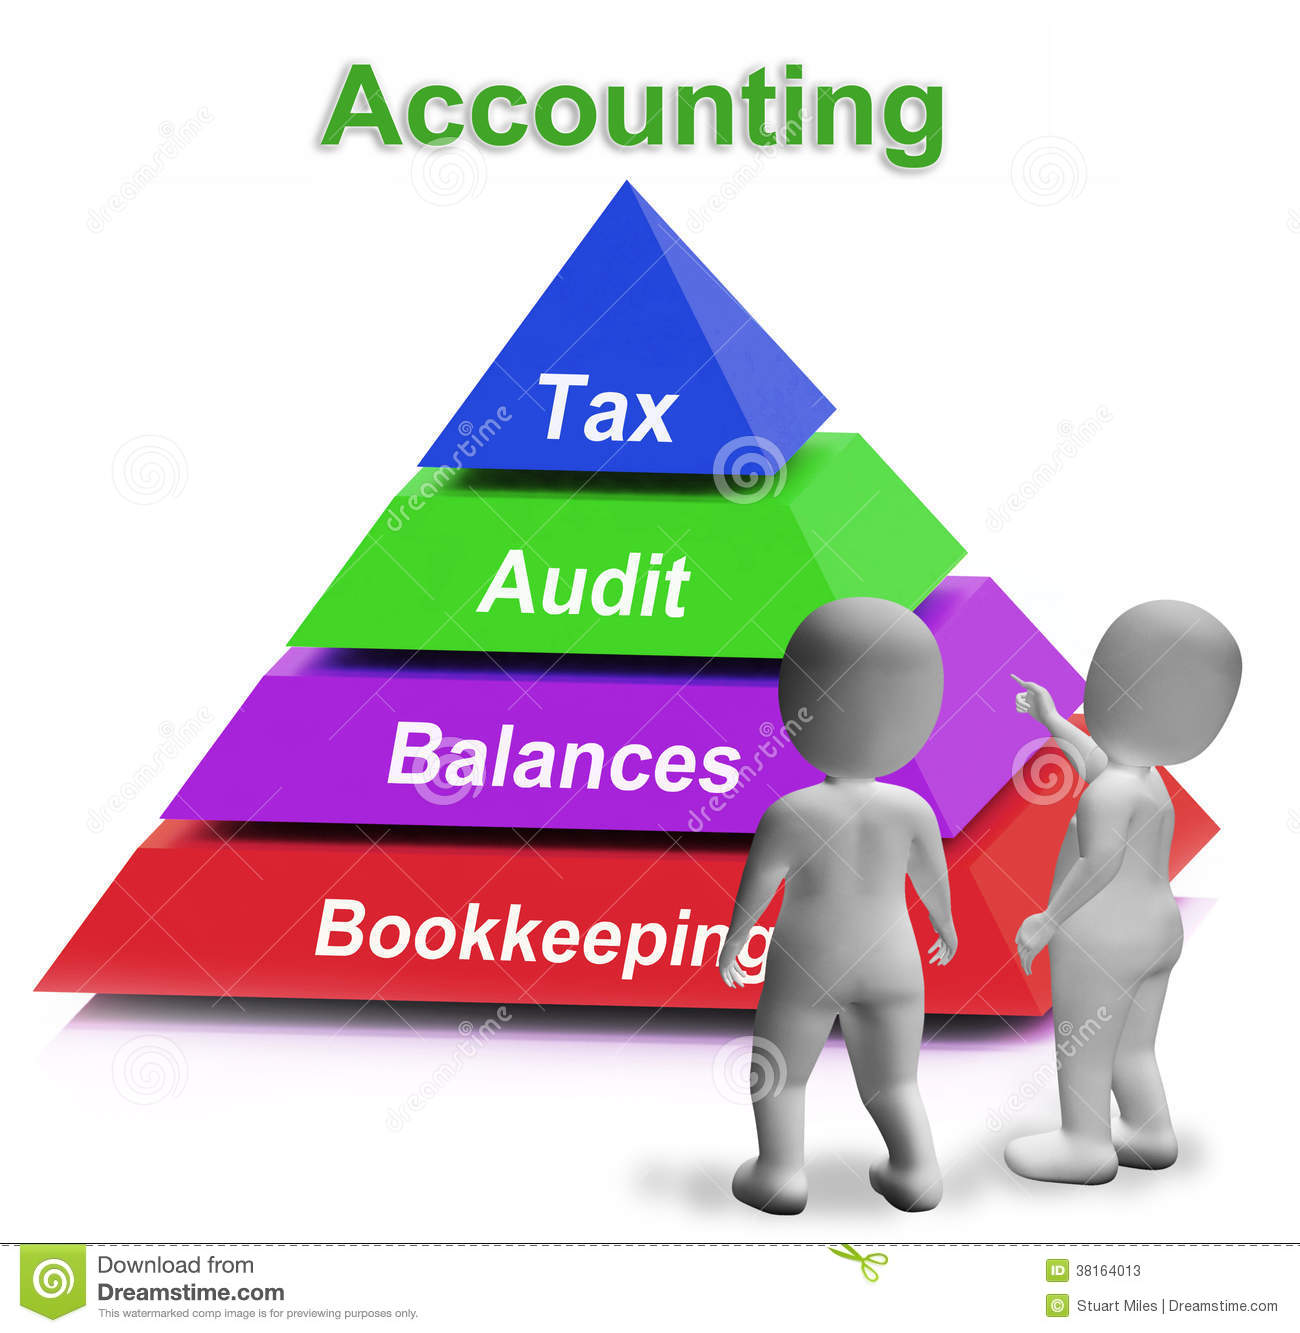 Accounting: Accounting Pyramid Means Paying Taxes Auditing Stock